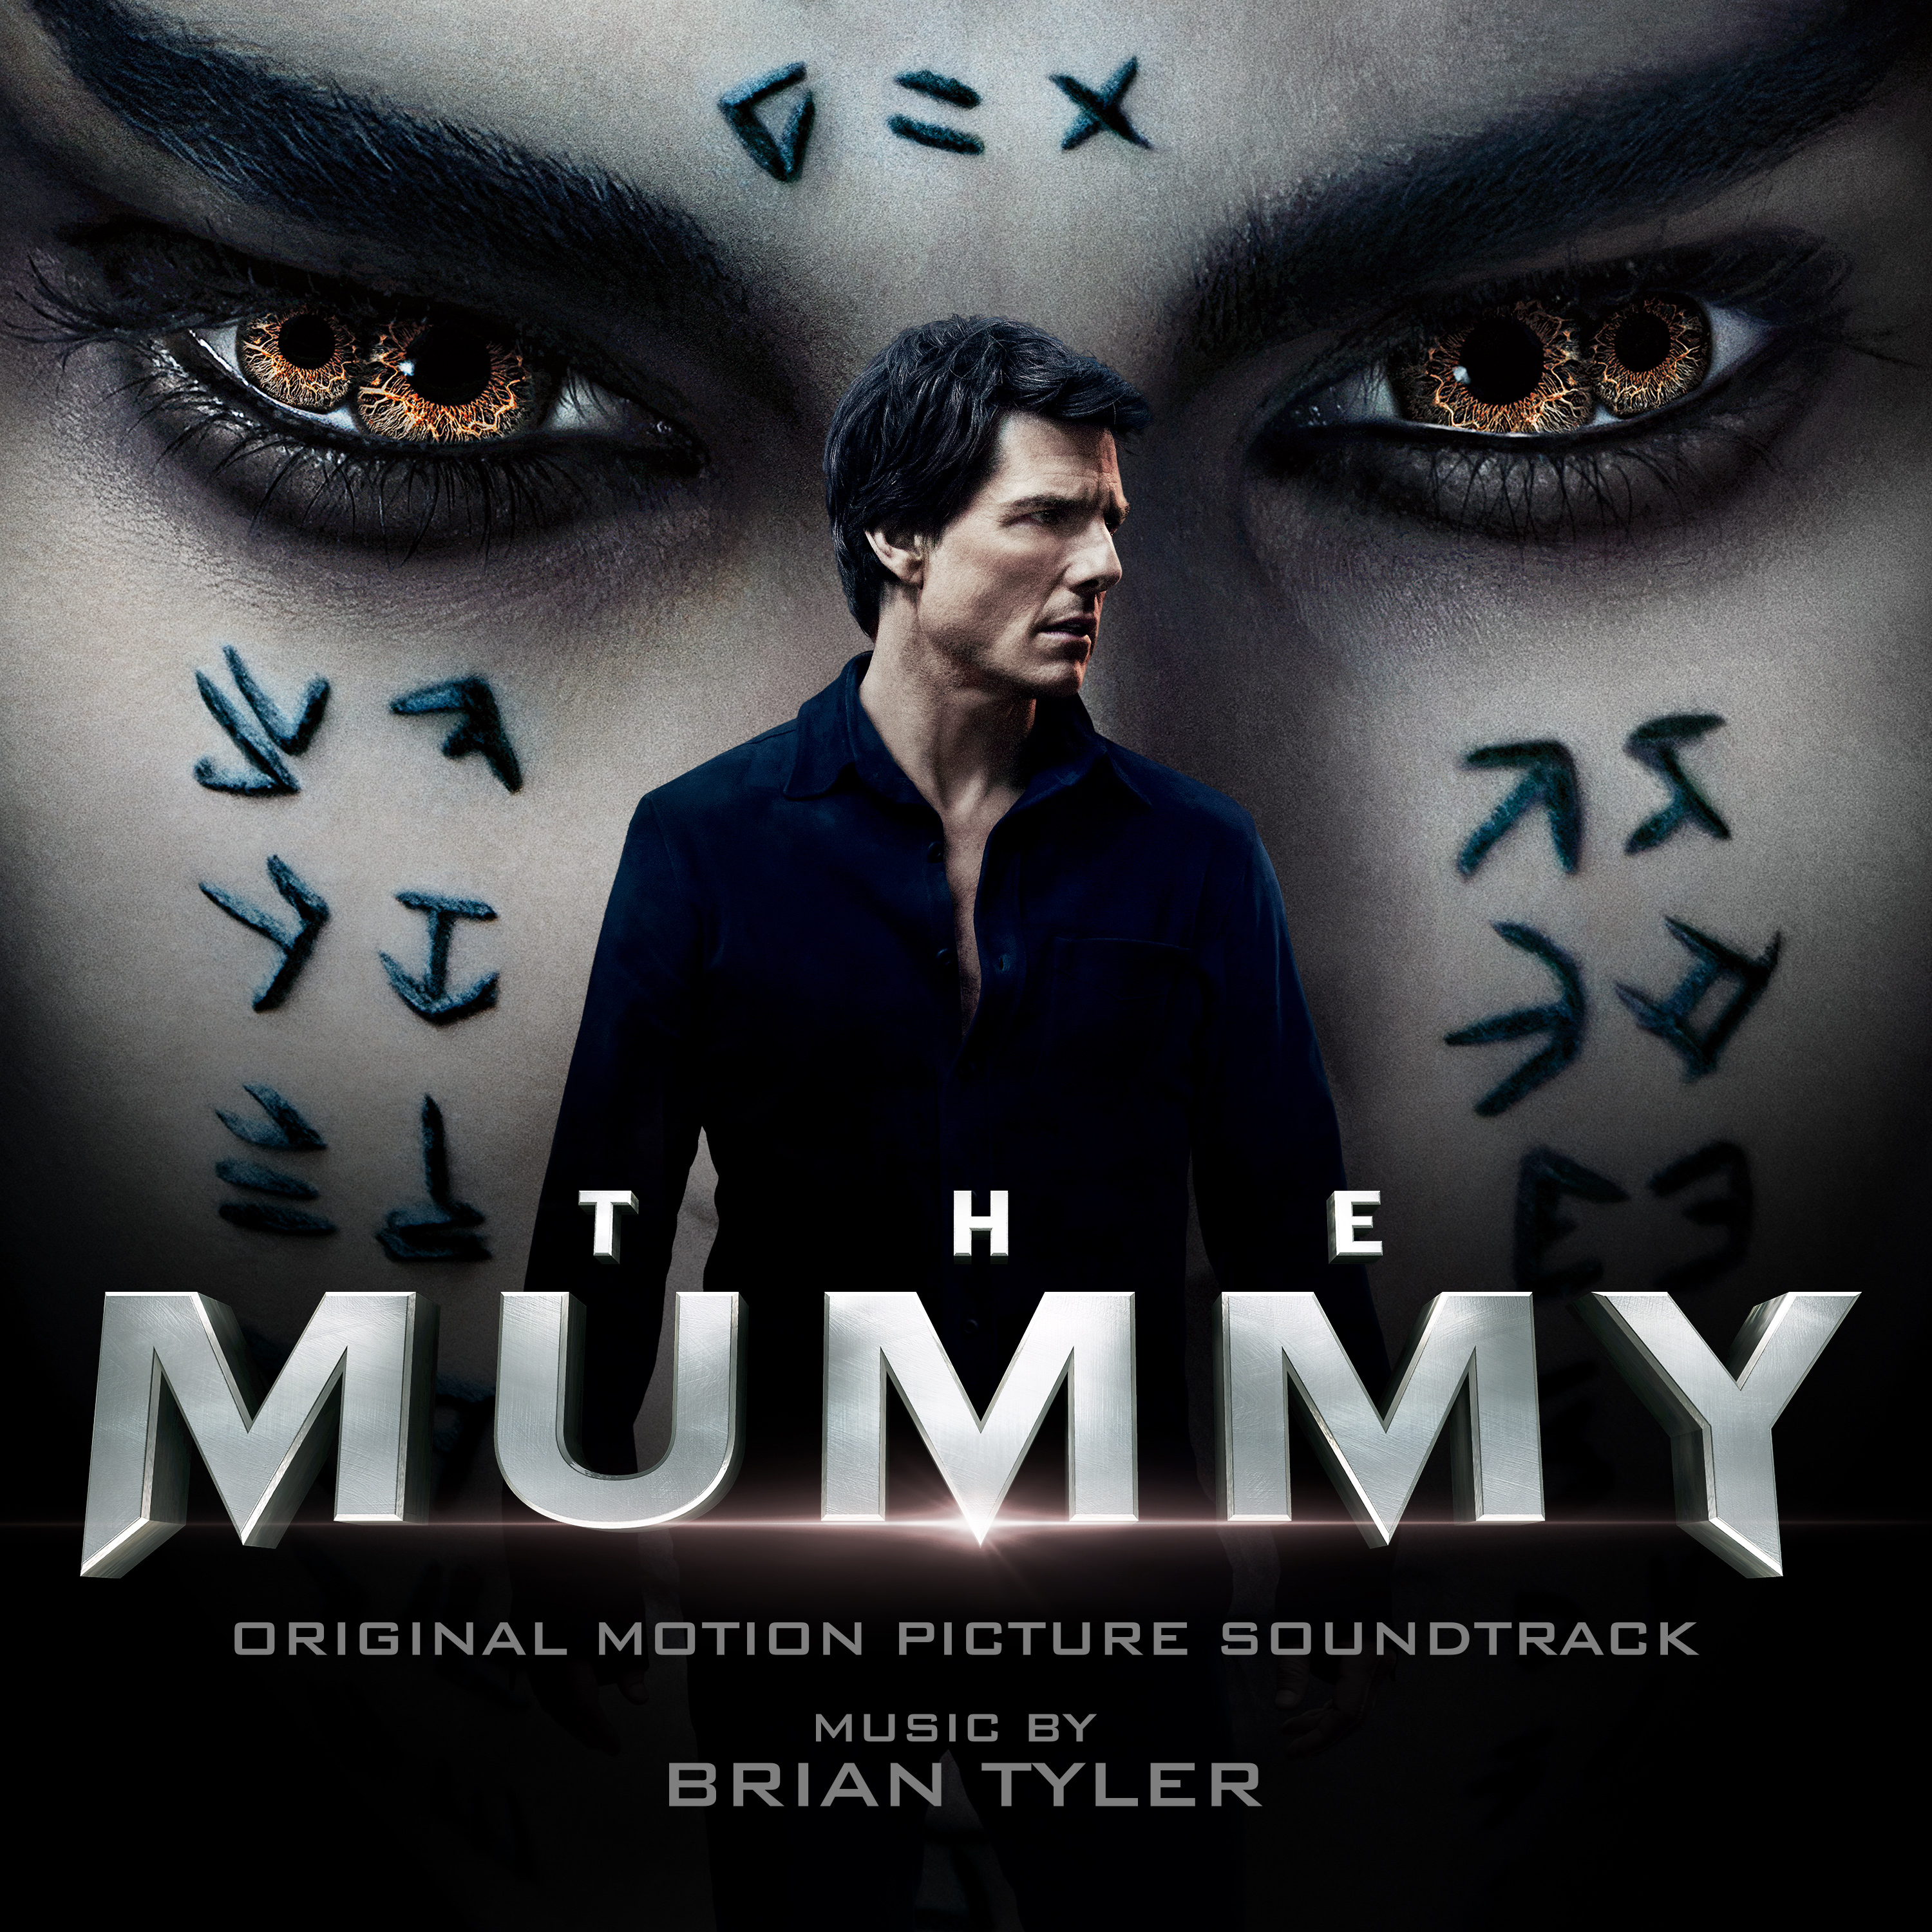 File:The Mummy Original Motion Picture Soundtrack.jpg